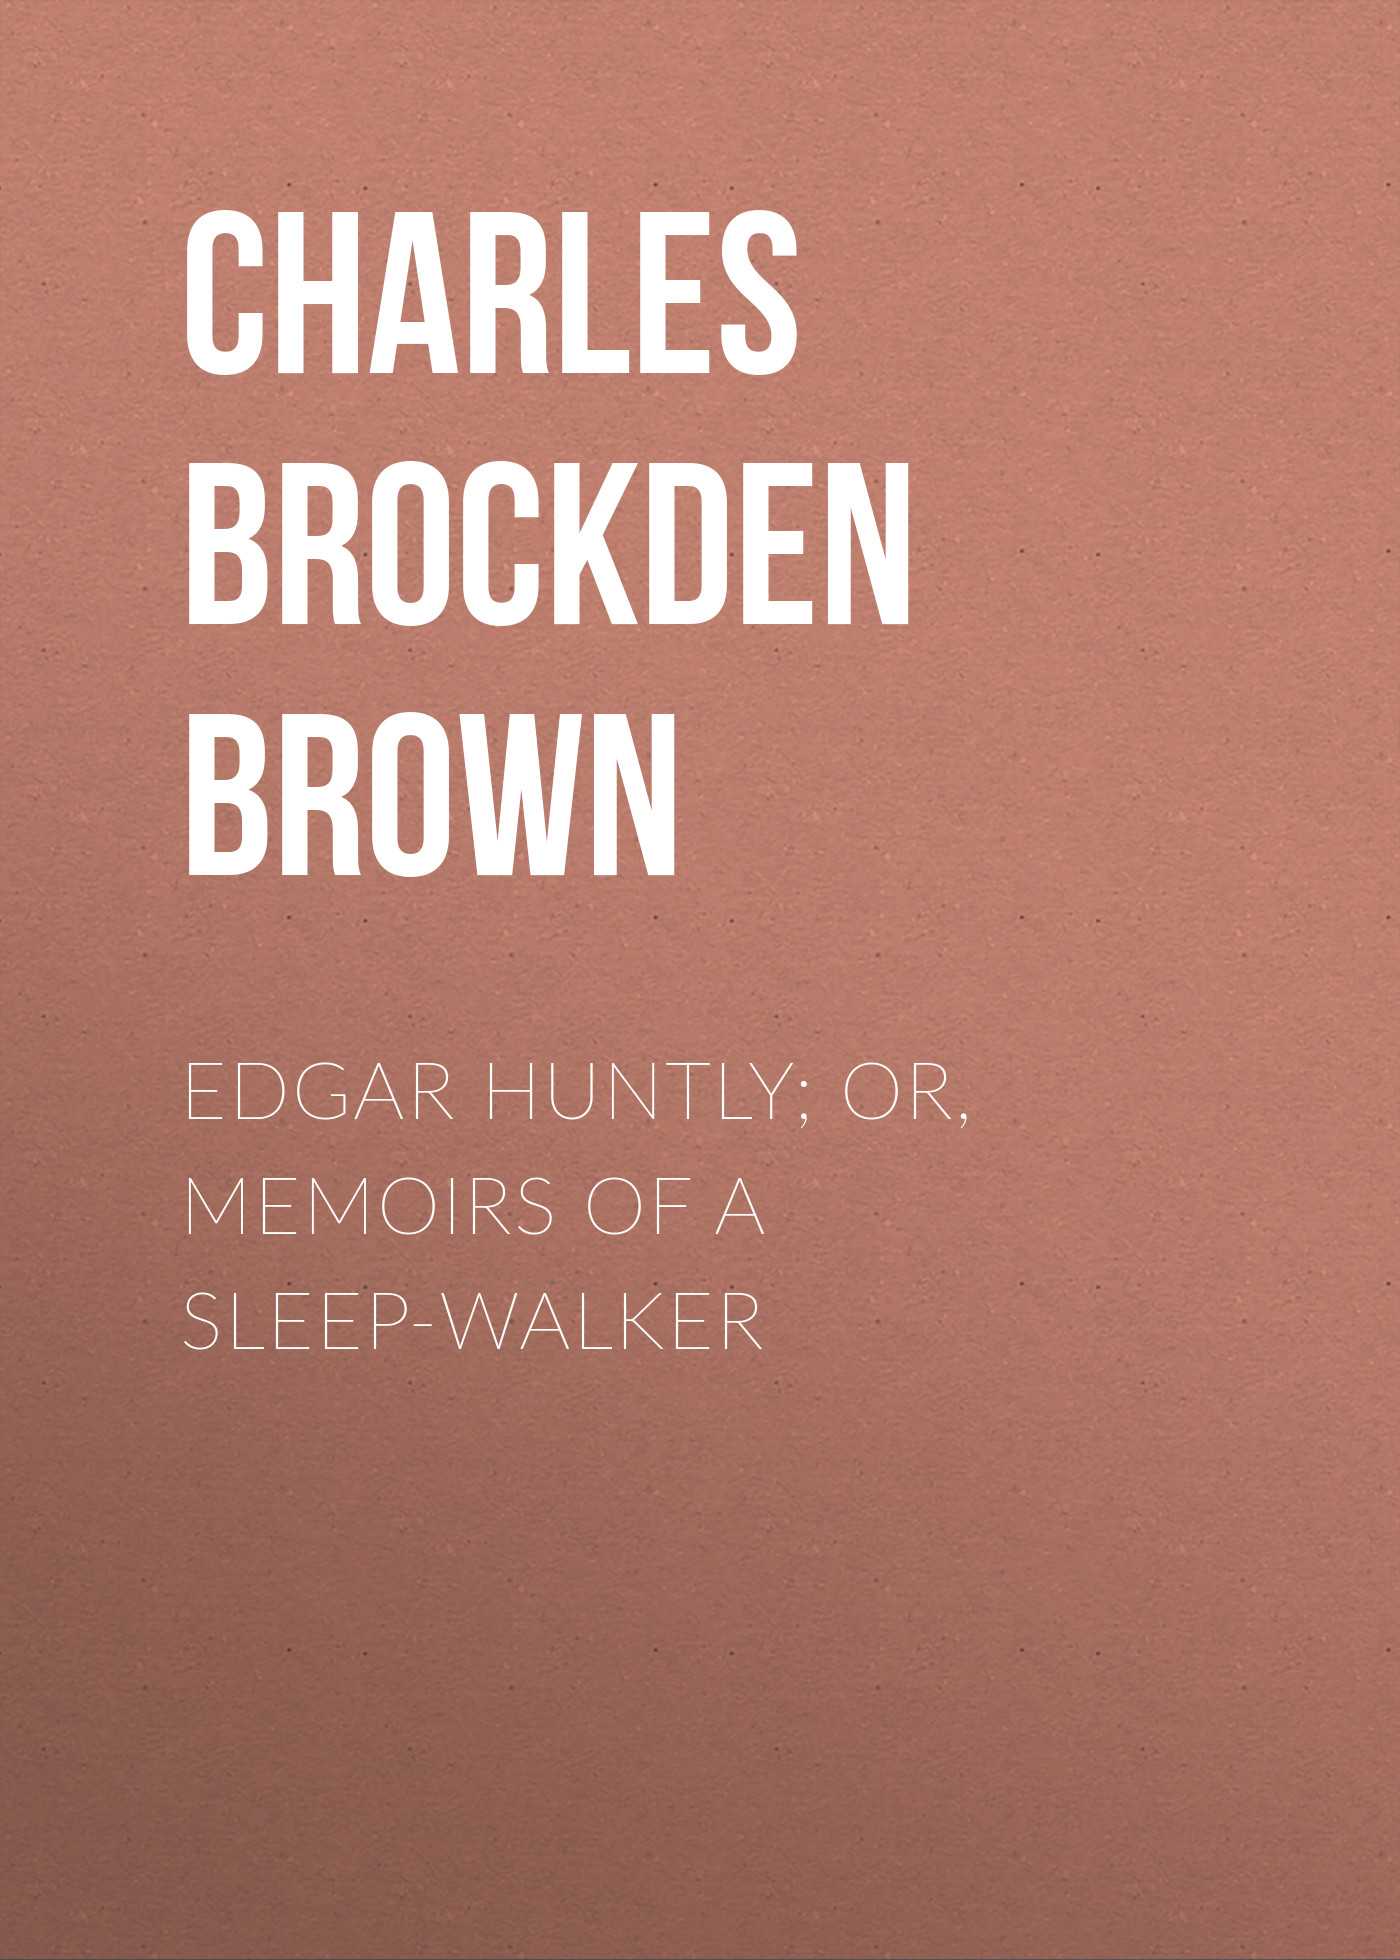 Charles Brockden Brown Edgar Huntly; or, Memoirs of a Sleep-Walker charles brockden brown ormond or the secret witness volume 1 of 3